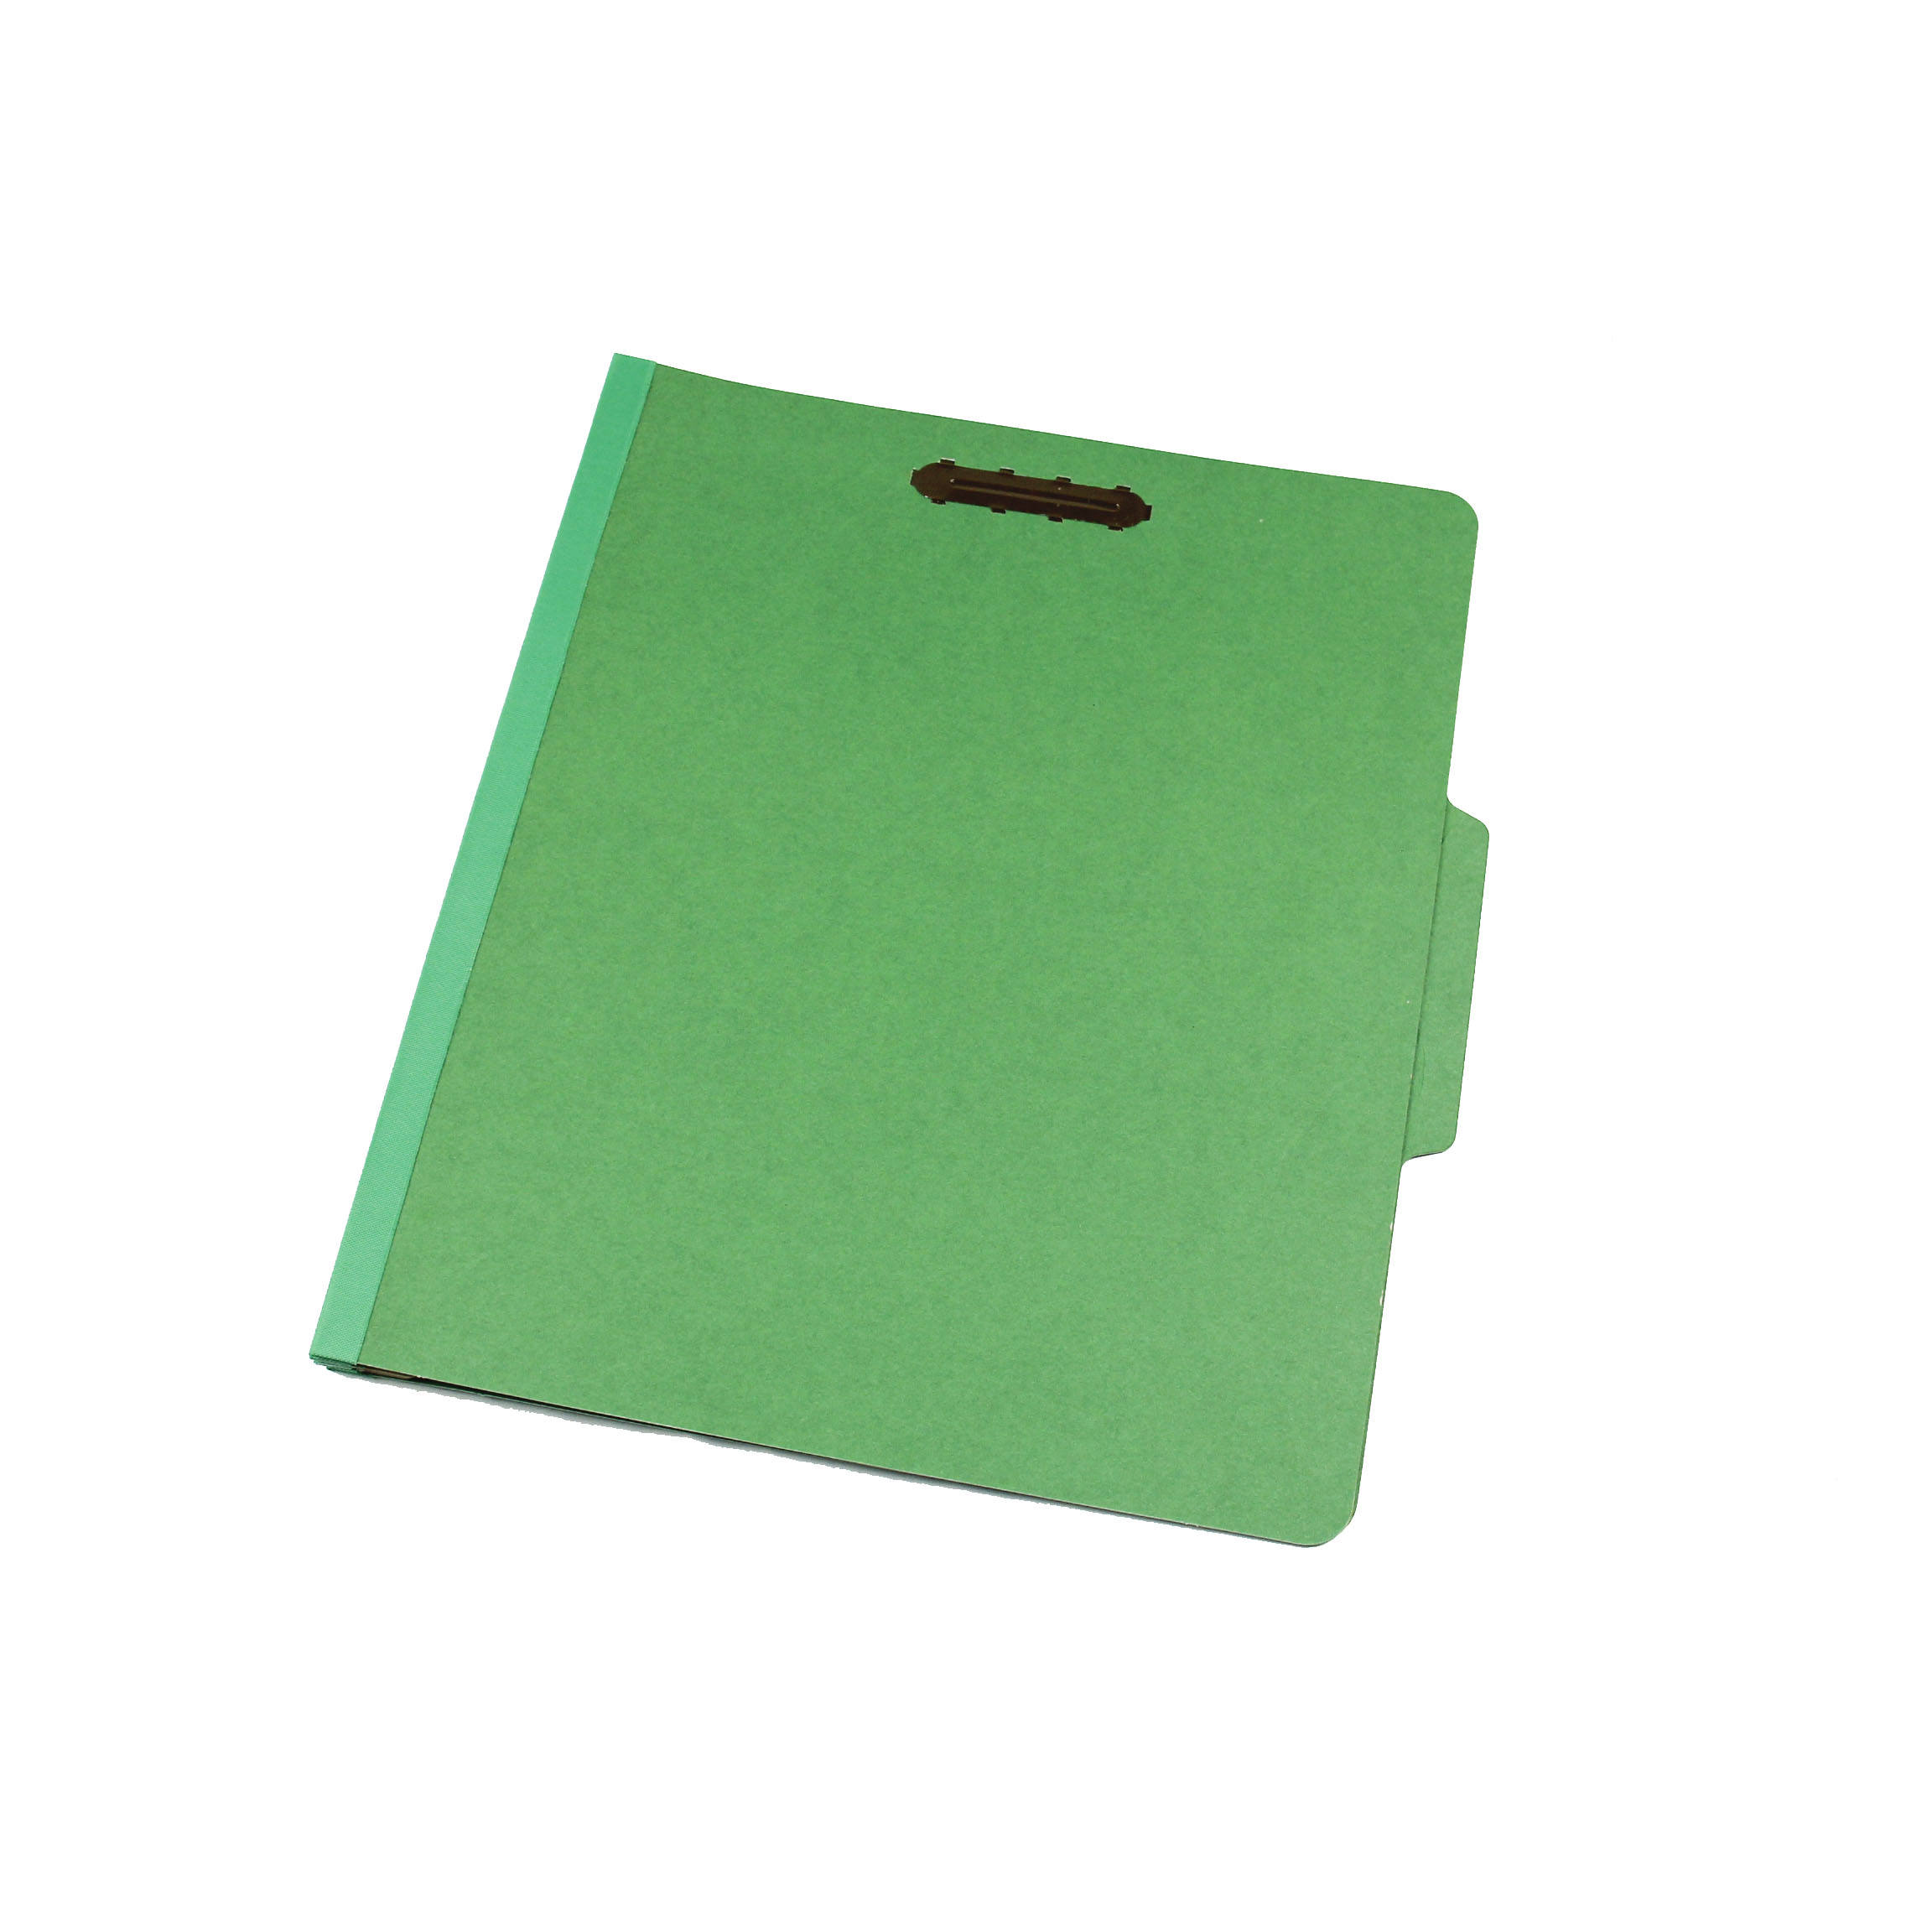 2020 top koop executive 3 layer groene spaanplaat classificatie mappen 2 partities